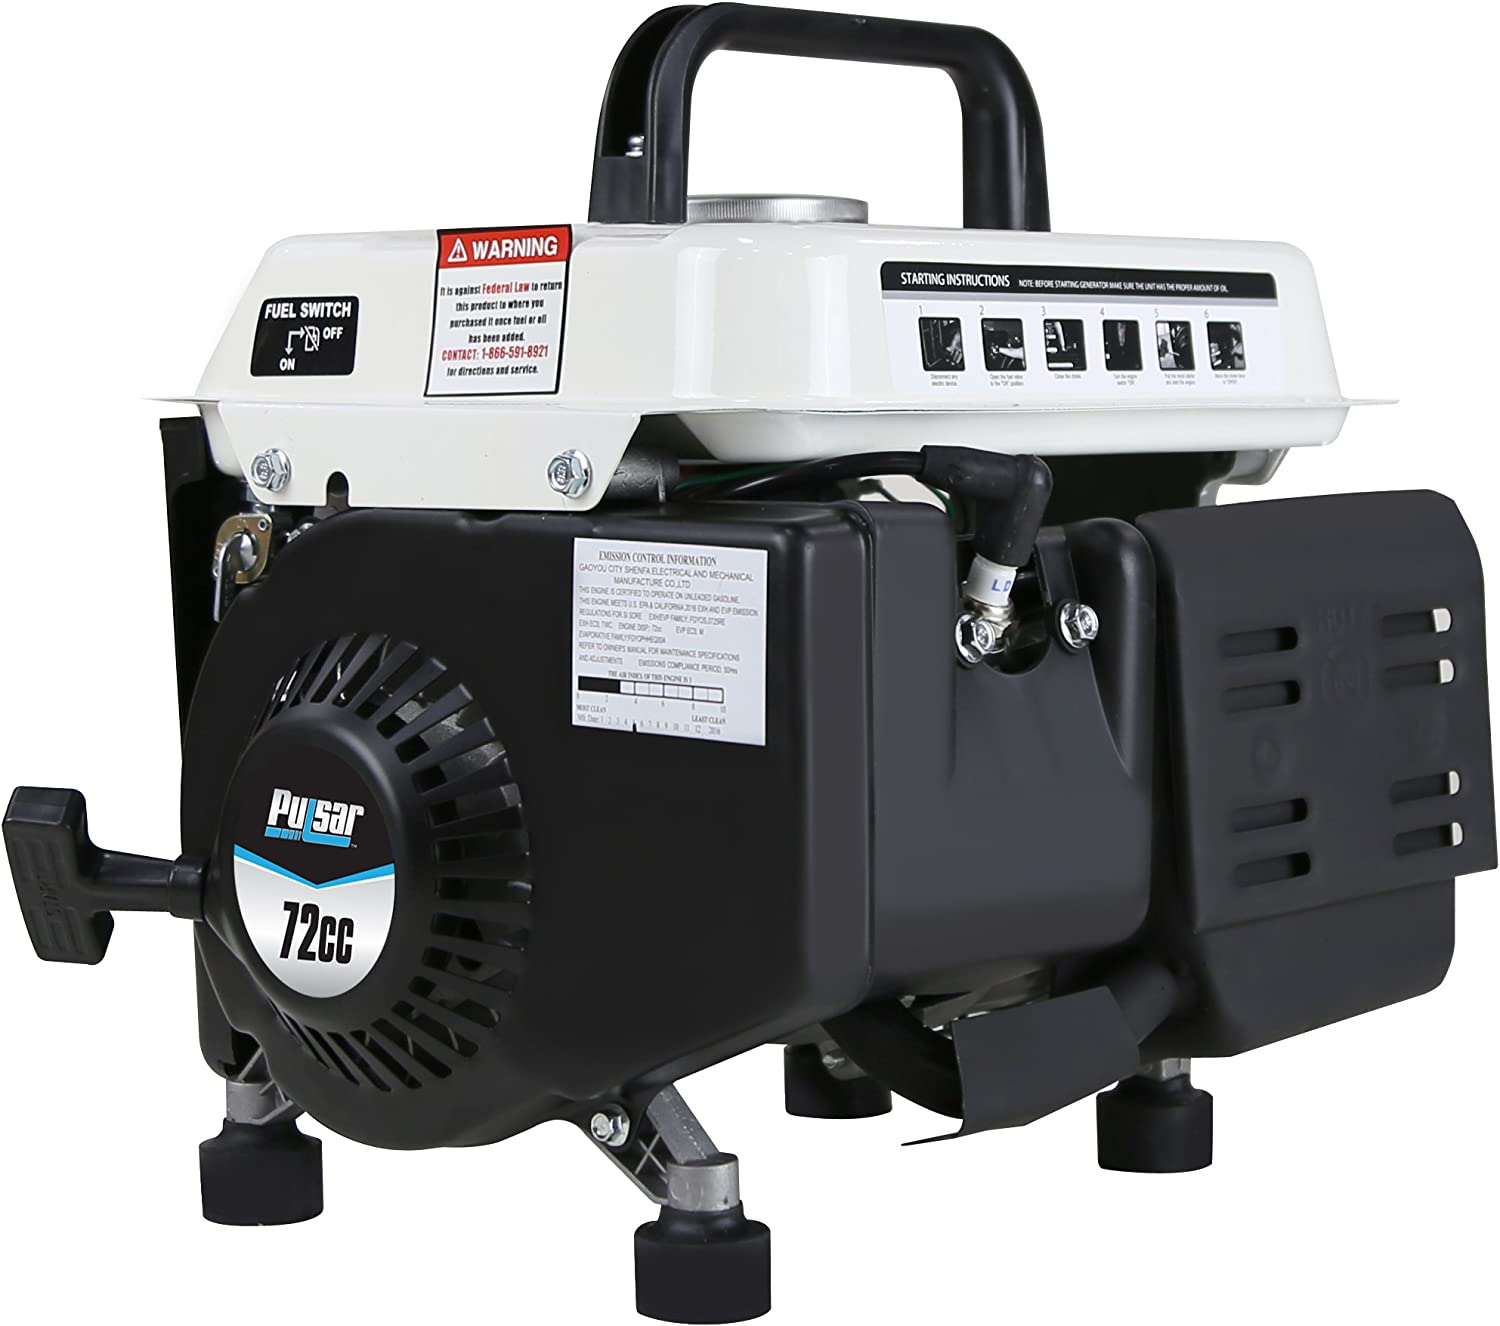 Pack of 1 PG1202S Gas-Powered Portable Generator Pulsar 1,200W Carrying Handle Black//White 1200 Watts